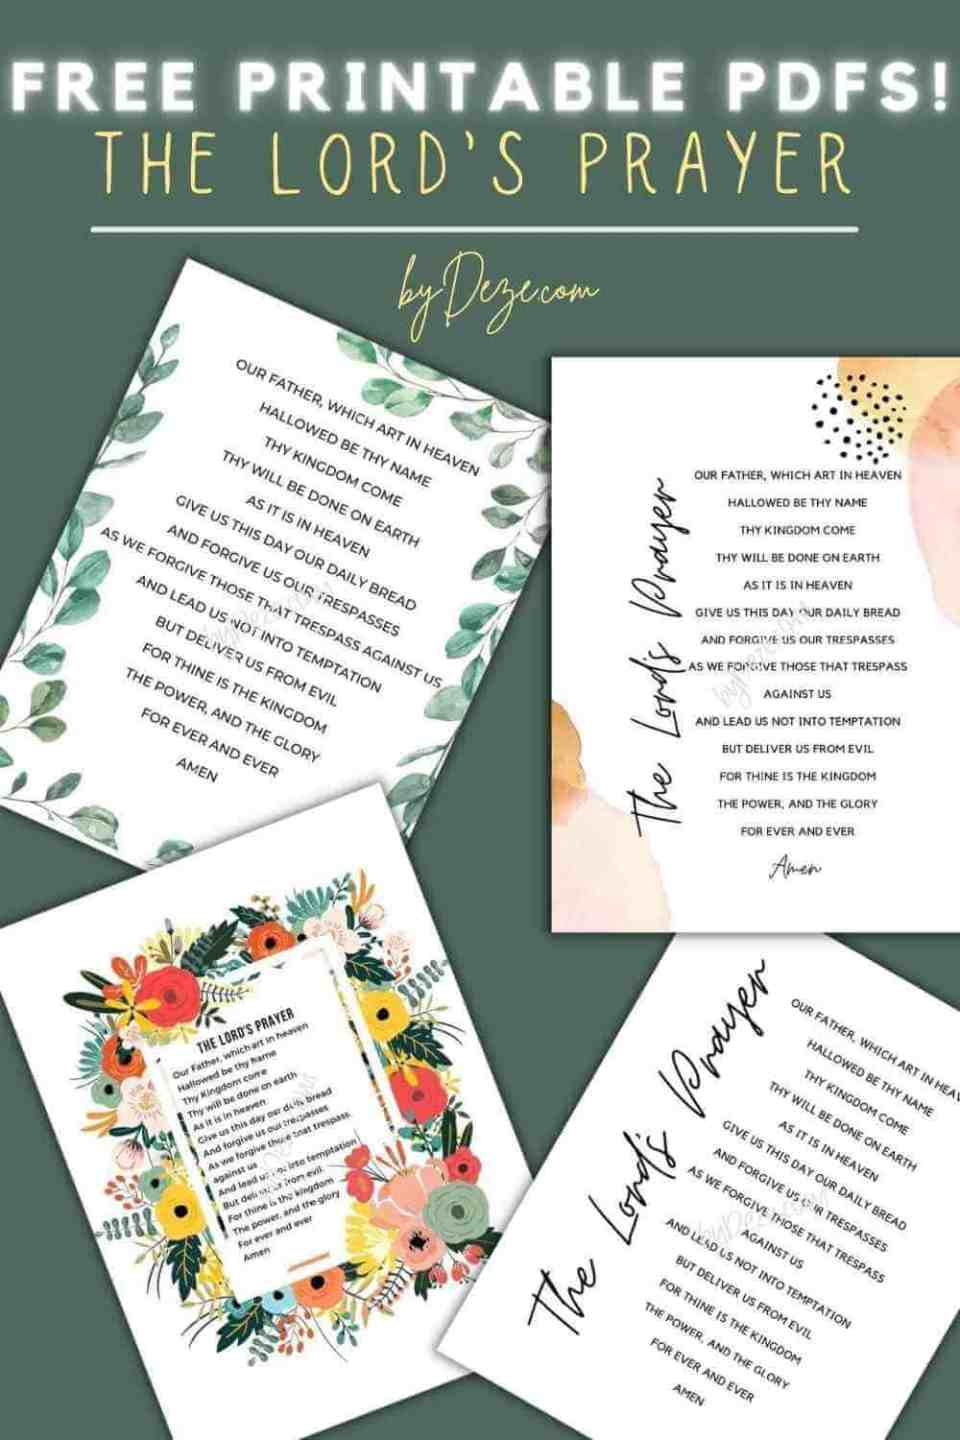 4 free printable PDFs of the Lords prayer